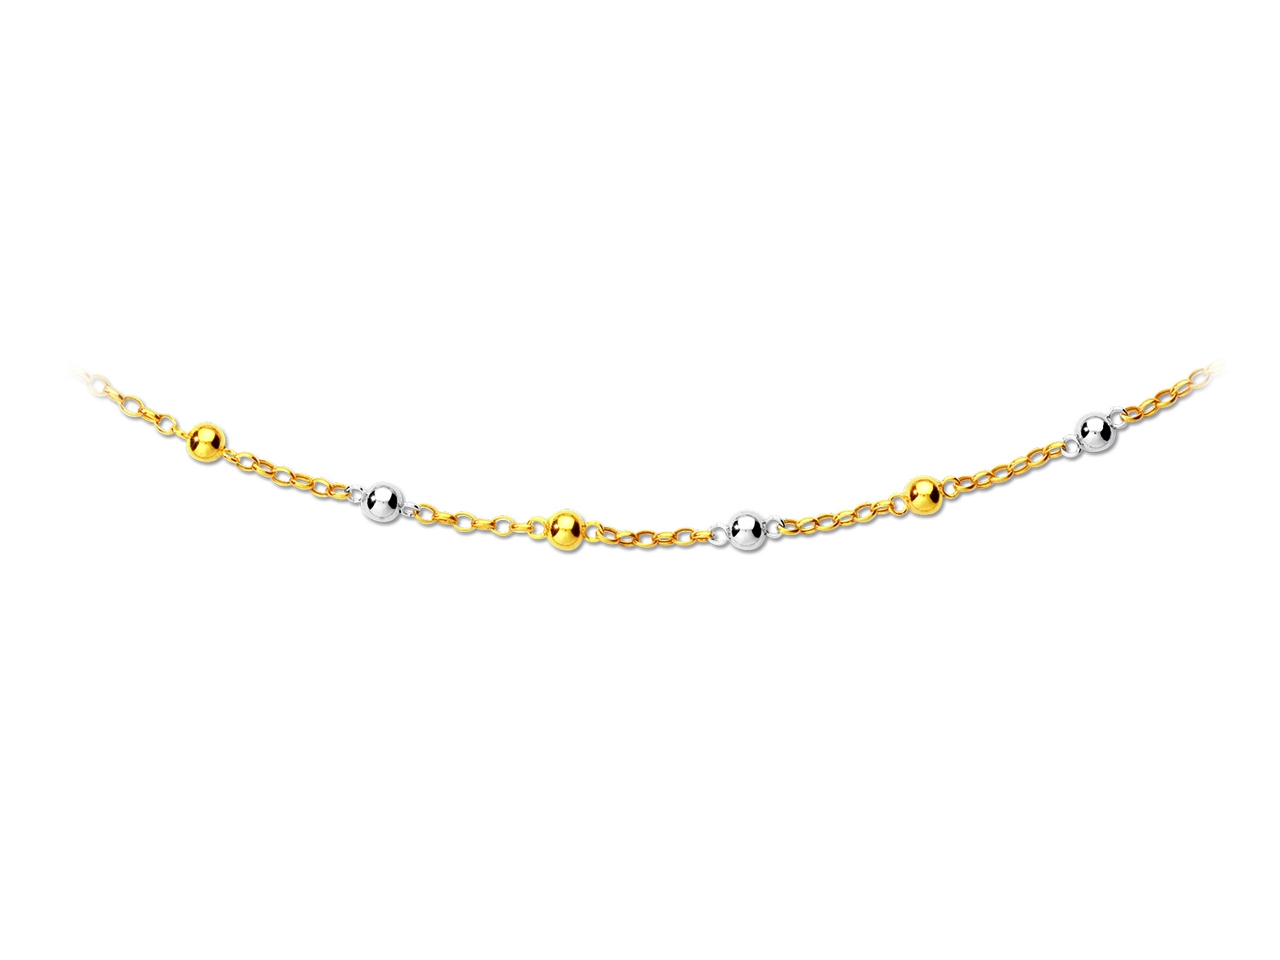 Collier maille et boules 6 mm, 44,5 cm, Or bicolore 18k